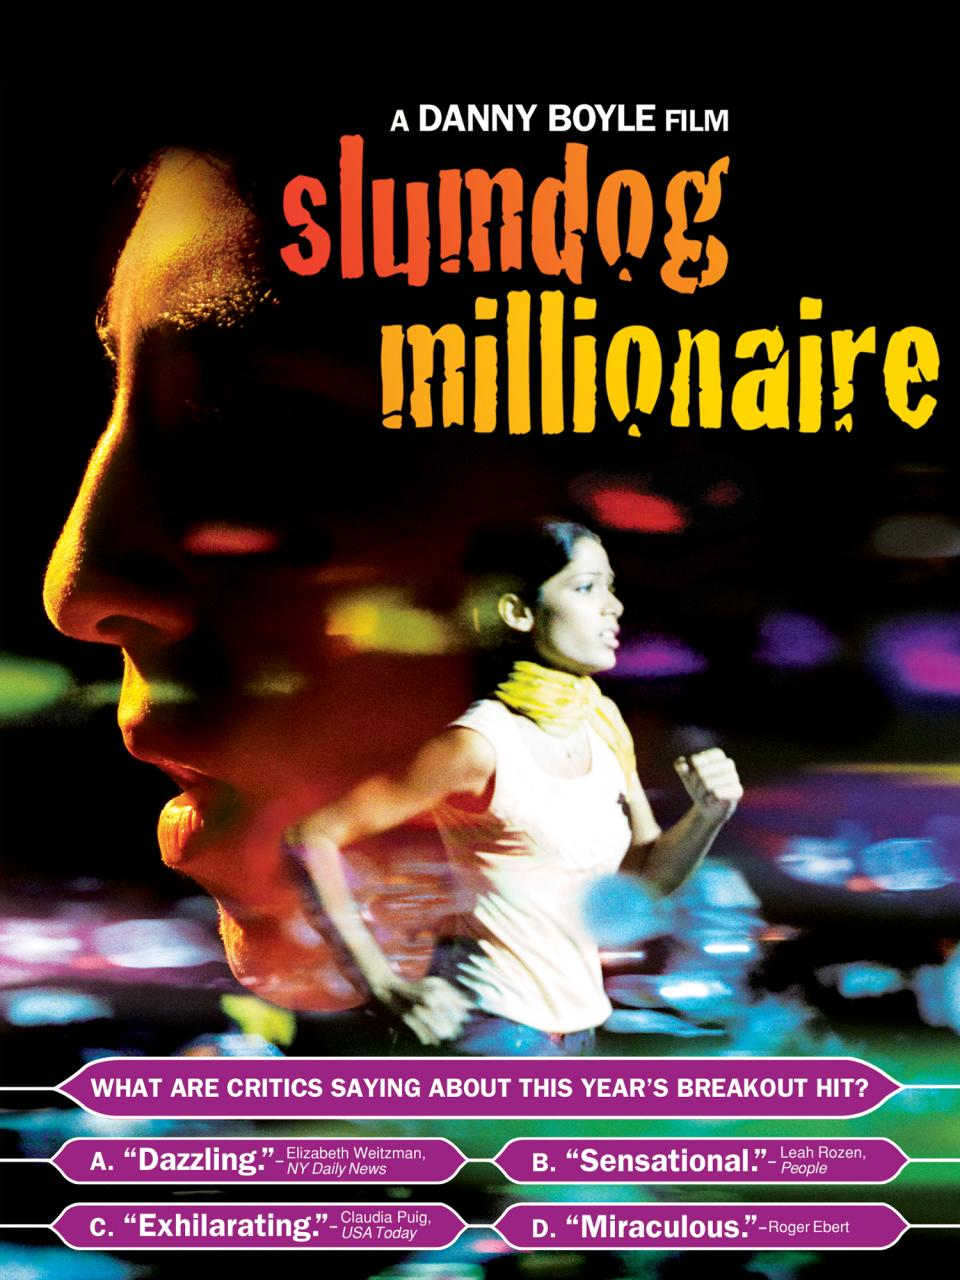 review of slumdog millionaire Slumdog millionaire is a staggeringly beautiful film from start to finish, but it also stays true to natural elements by retaining an affecting despondency present in mumbai's darker corners to this day what takes danny boyle's film to even another level, however, is its awareness of the audience regarding its potent nature, keeping it.